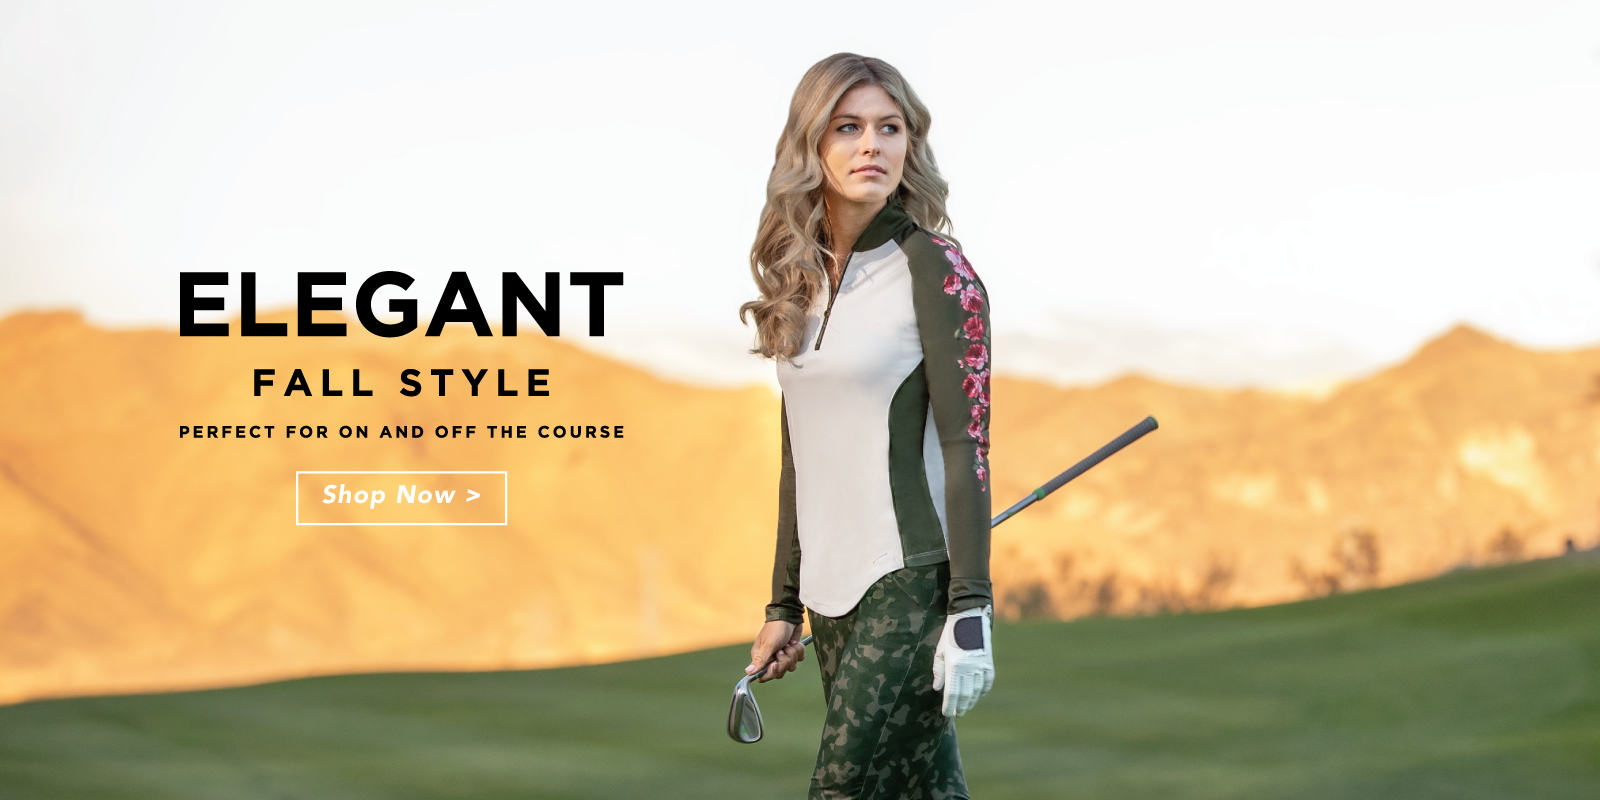 Elegant Fall style perfect for on and off the course shop now